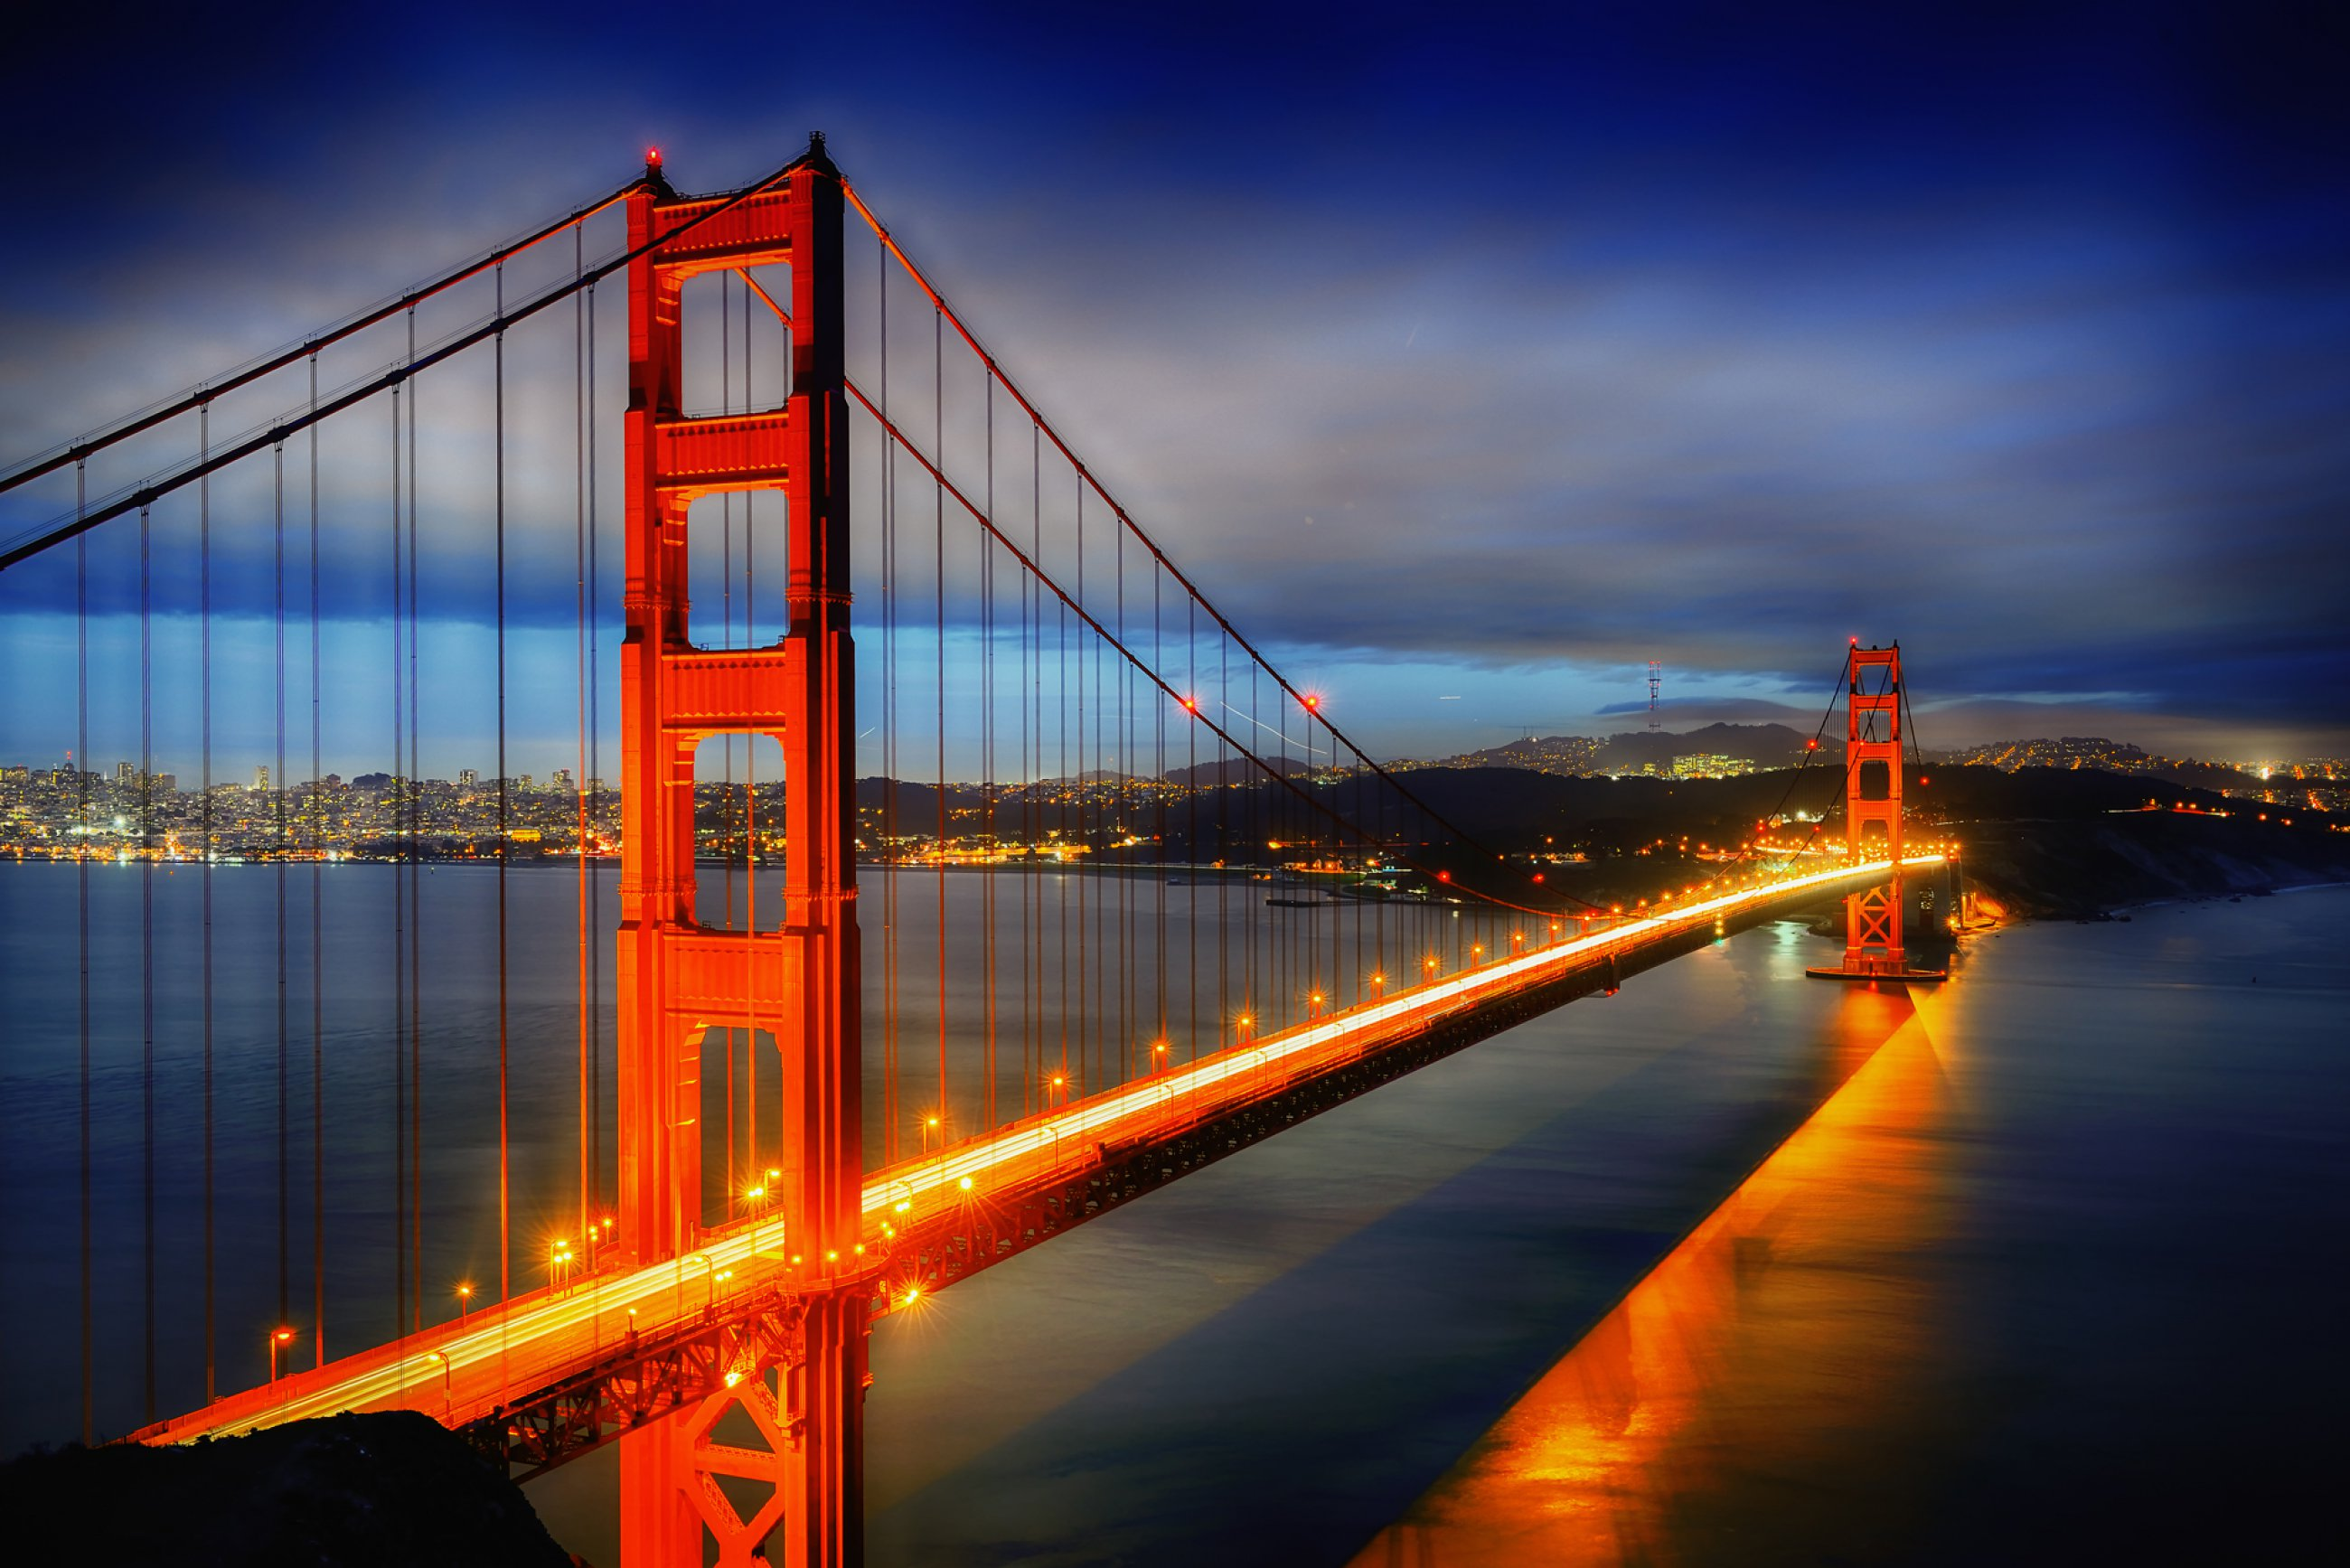 https://bubo.sk/uploads/galleries/7370/sf-kalifornia-famous-golden-gate-bridge-san-francisco-at-night-usa.jpg